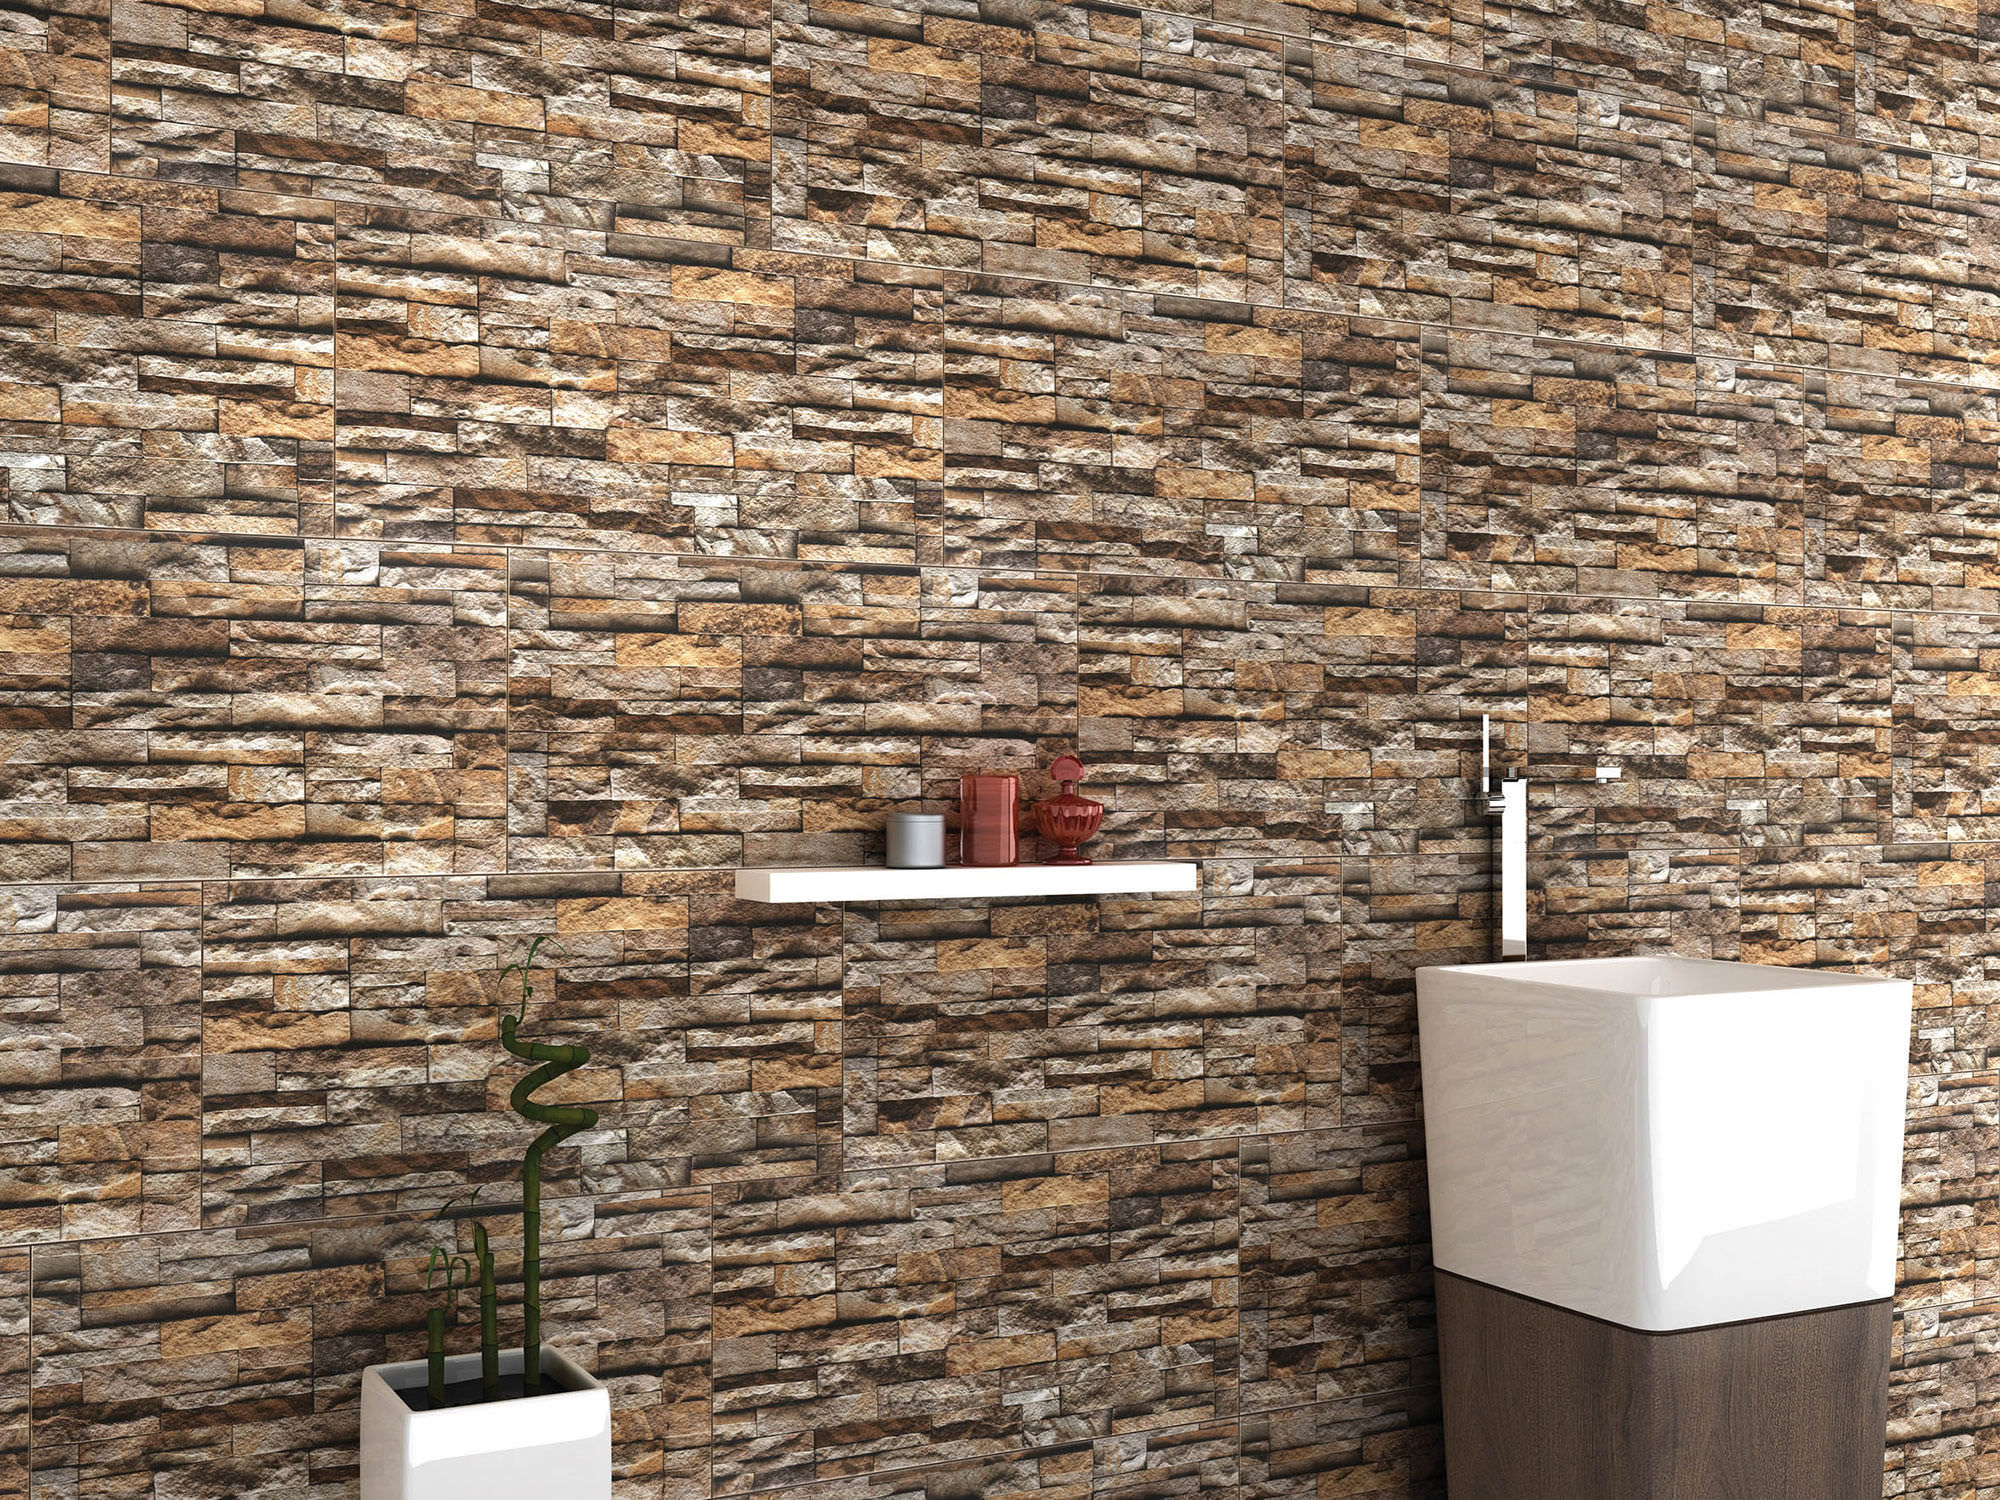 bathroom-tile-indoor-wall-porcelain